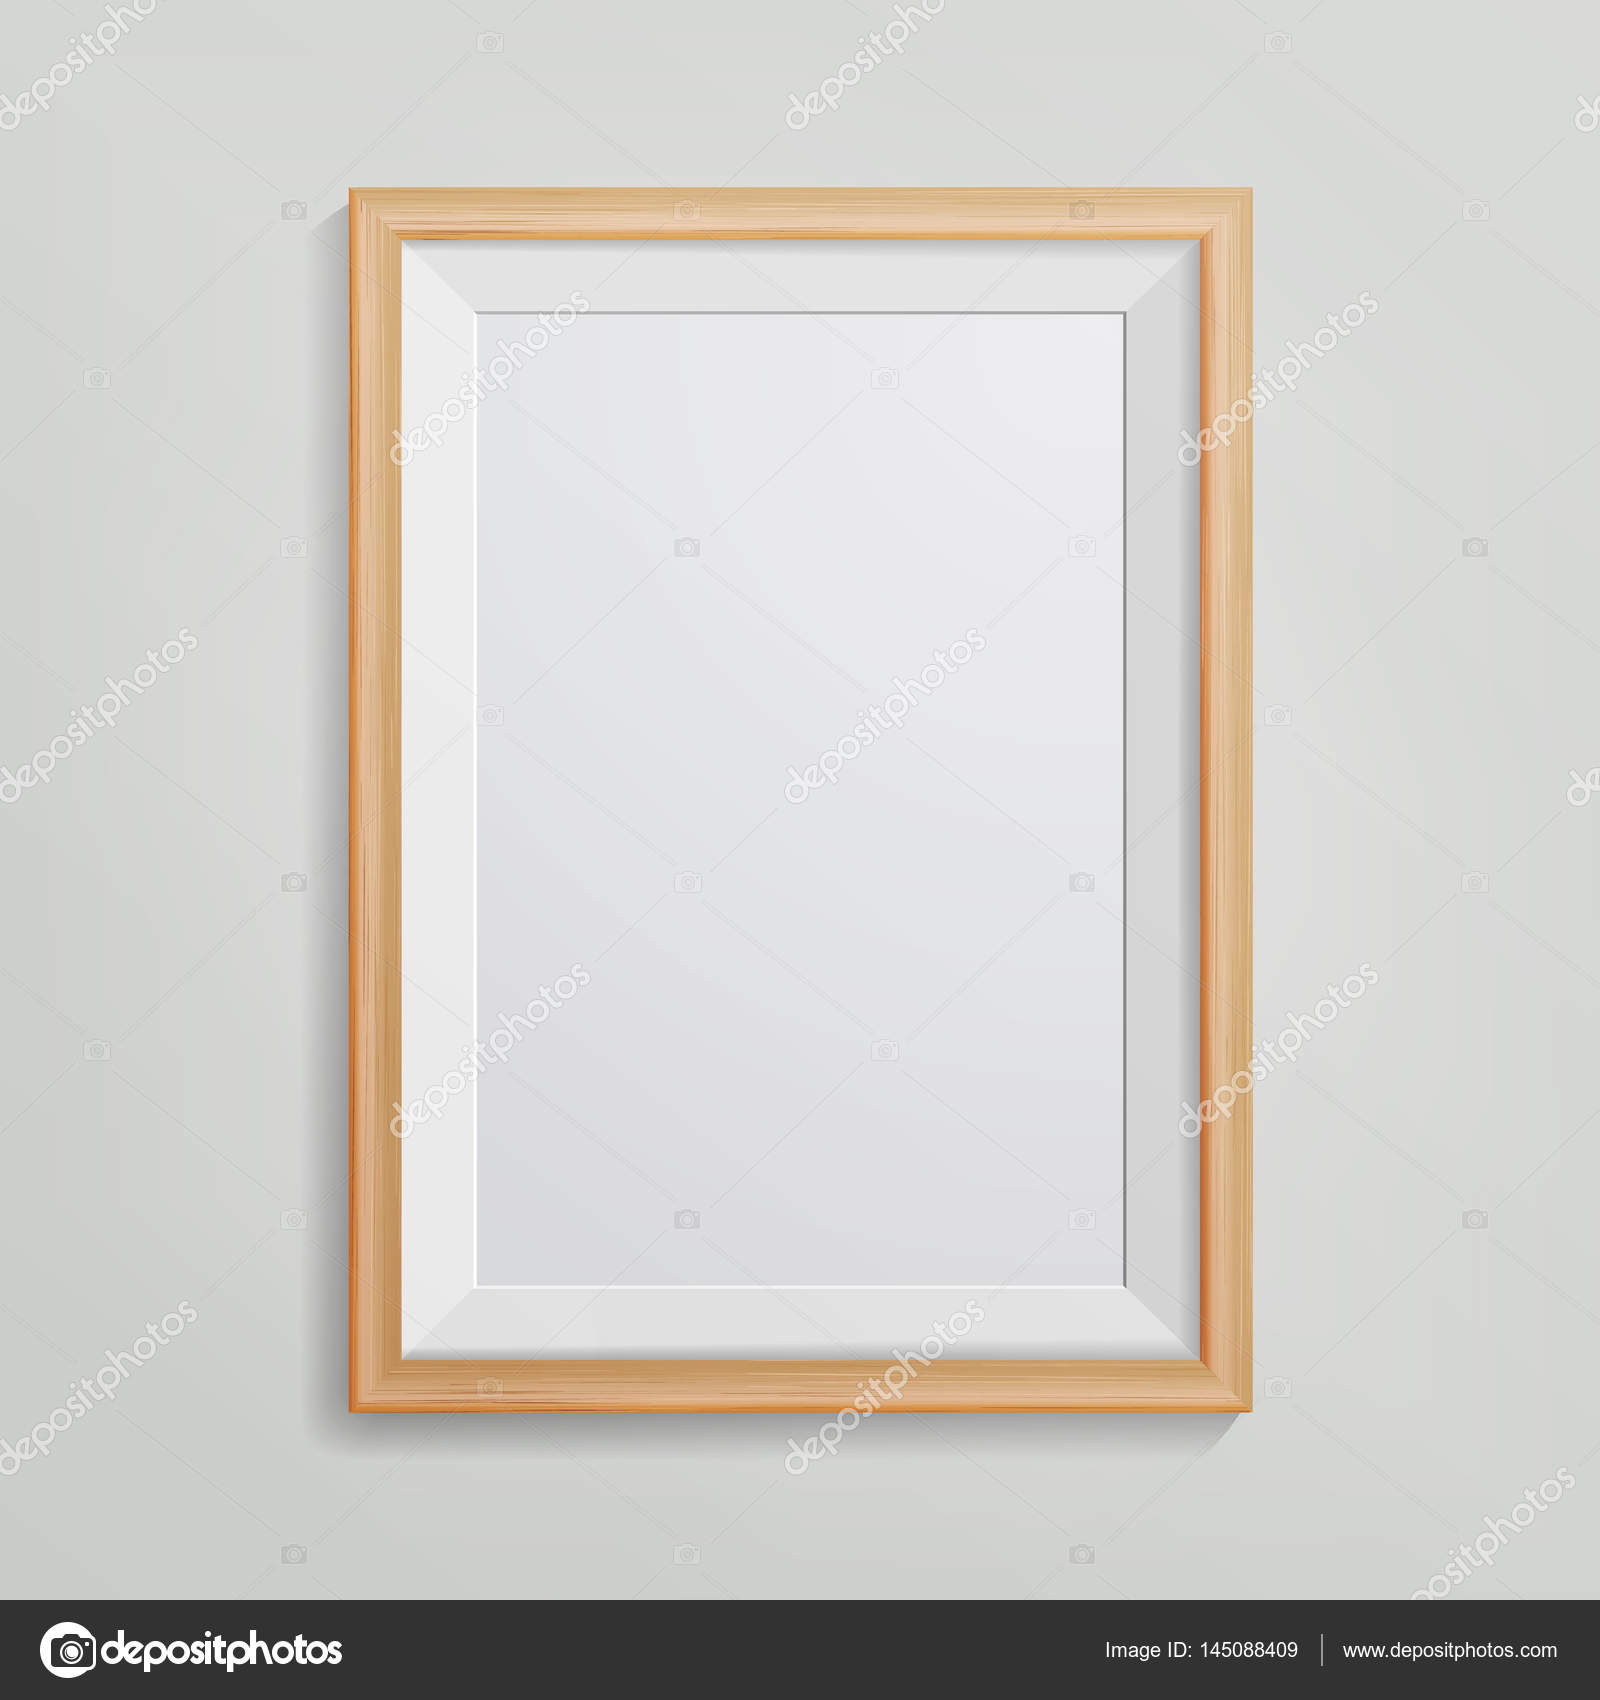 Realistic Photo Frame Vector. 3d Empty Wood Blank Picture Frame ...